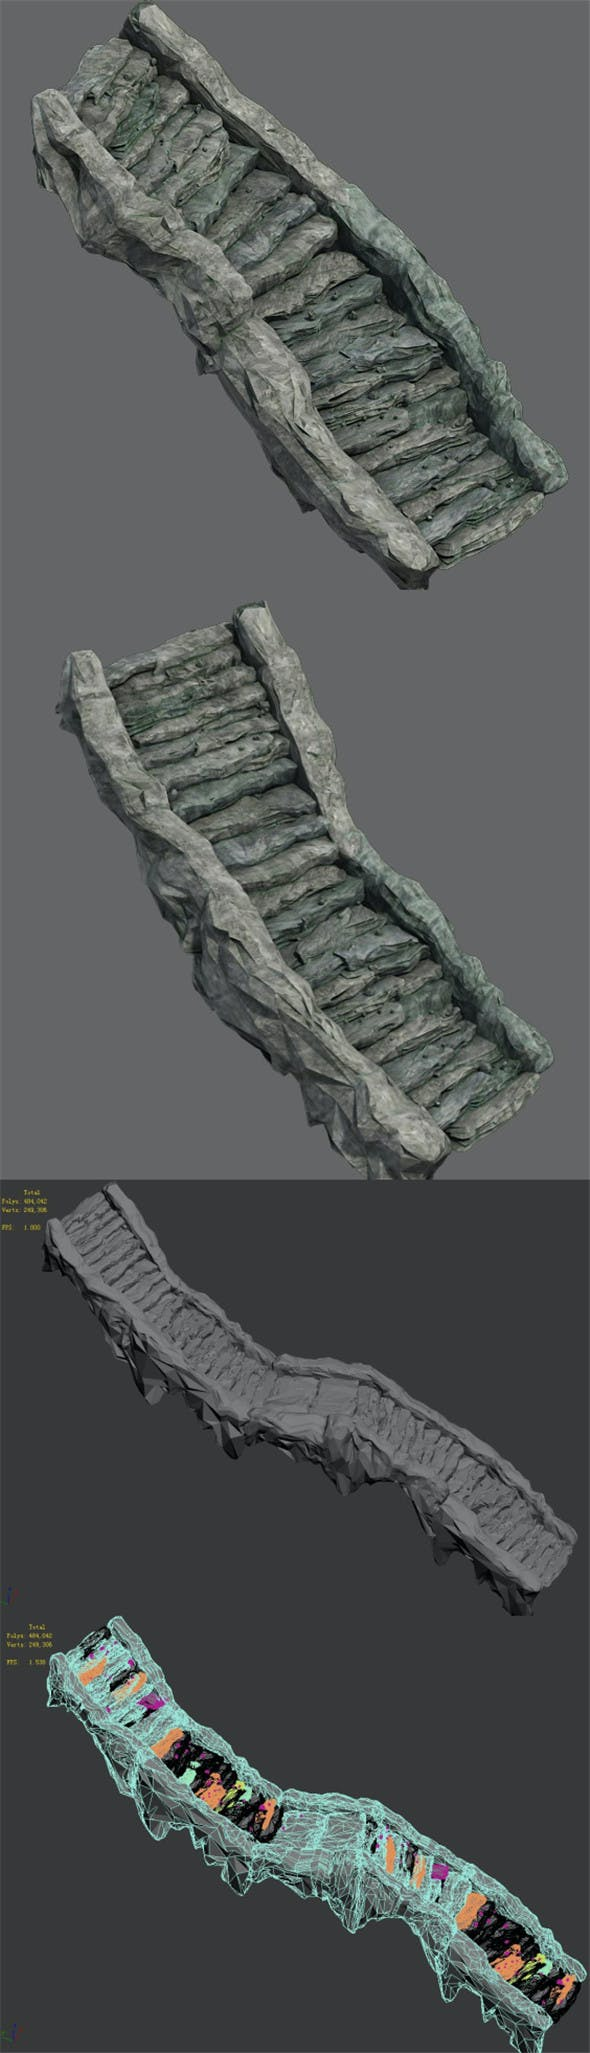 Shushan - stone staircase 02 - 3DOcean Item for Sale